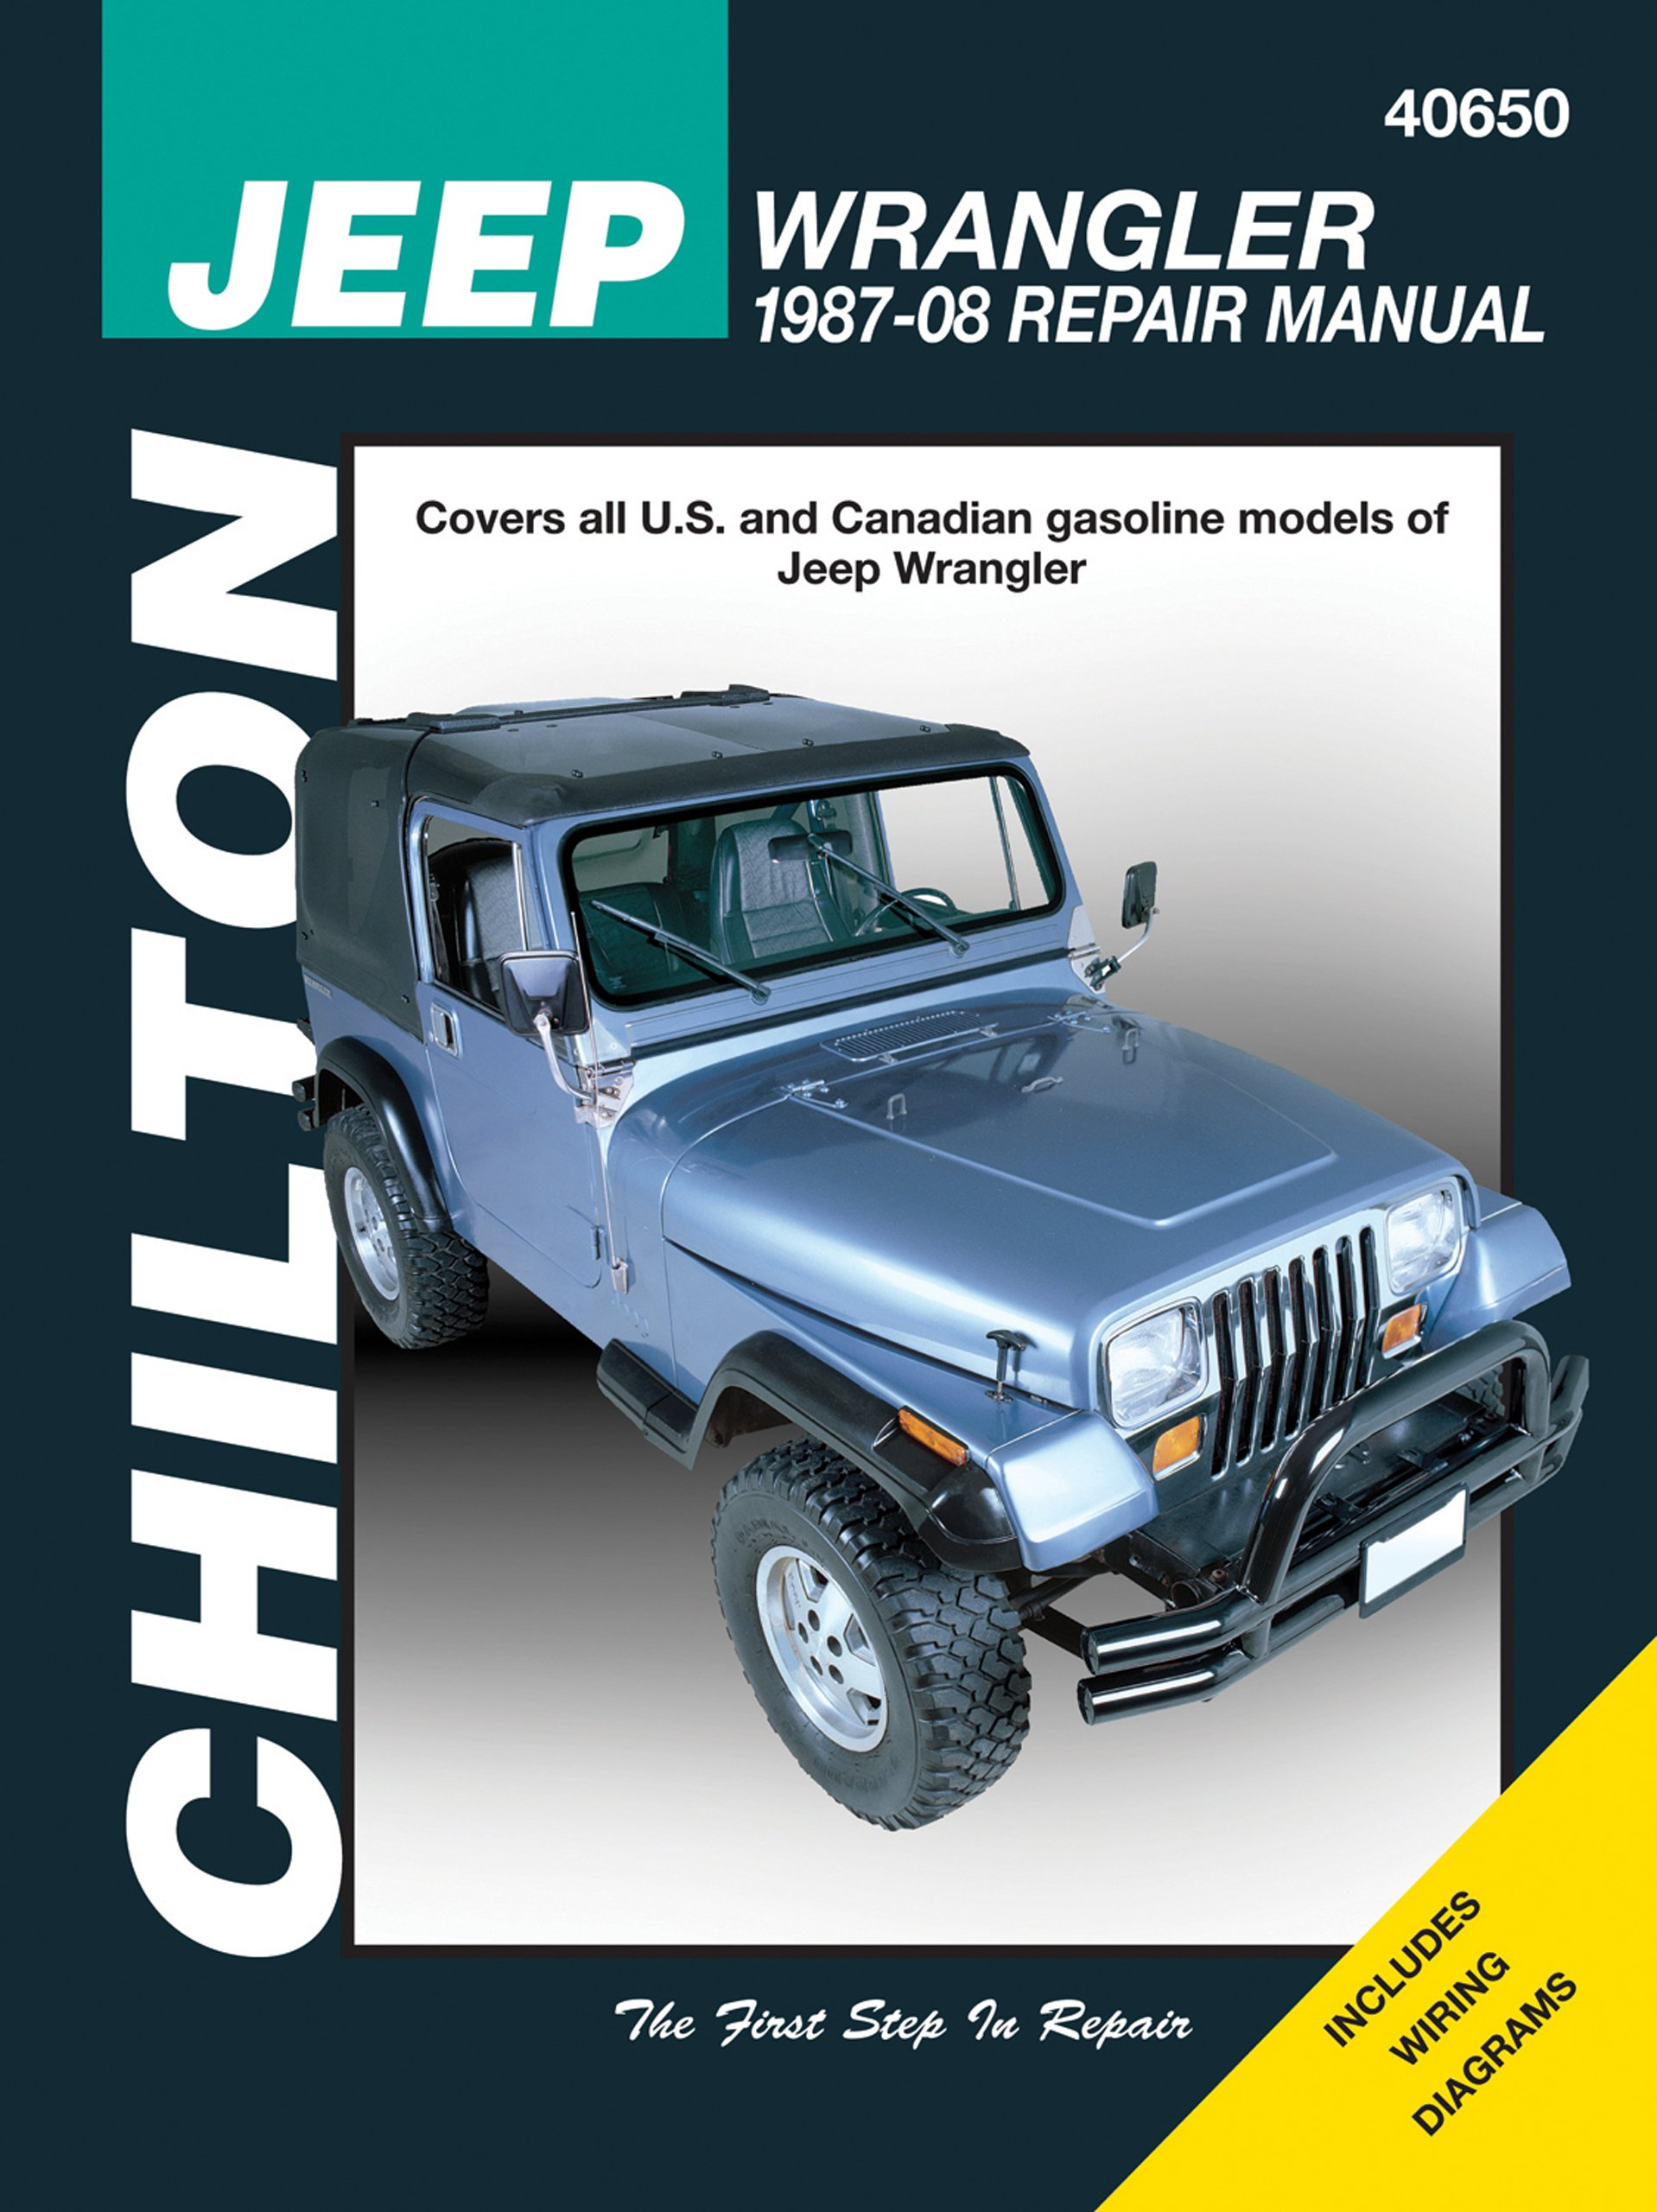 Jeep Wrangler 1987-2008 (Chilton's Total Car Care Repair Manual): Chilton:  9781563928437: Amazon.com: Books